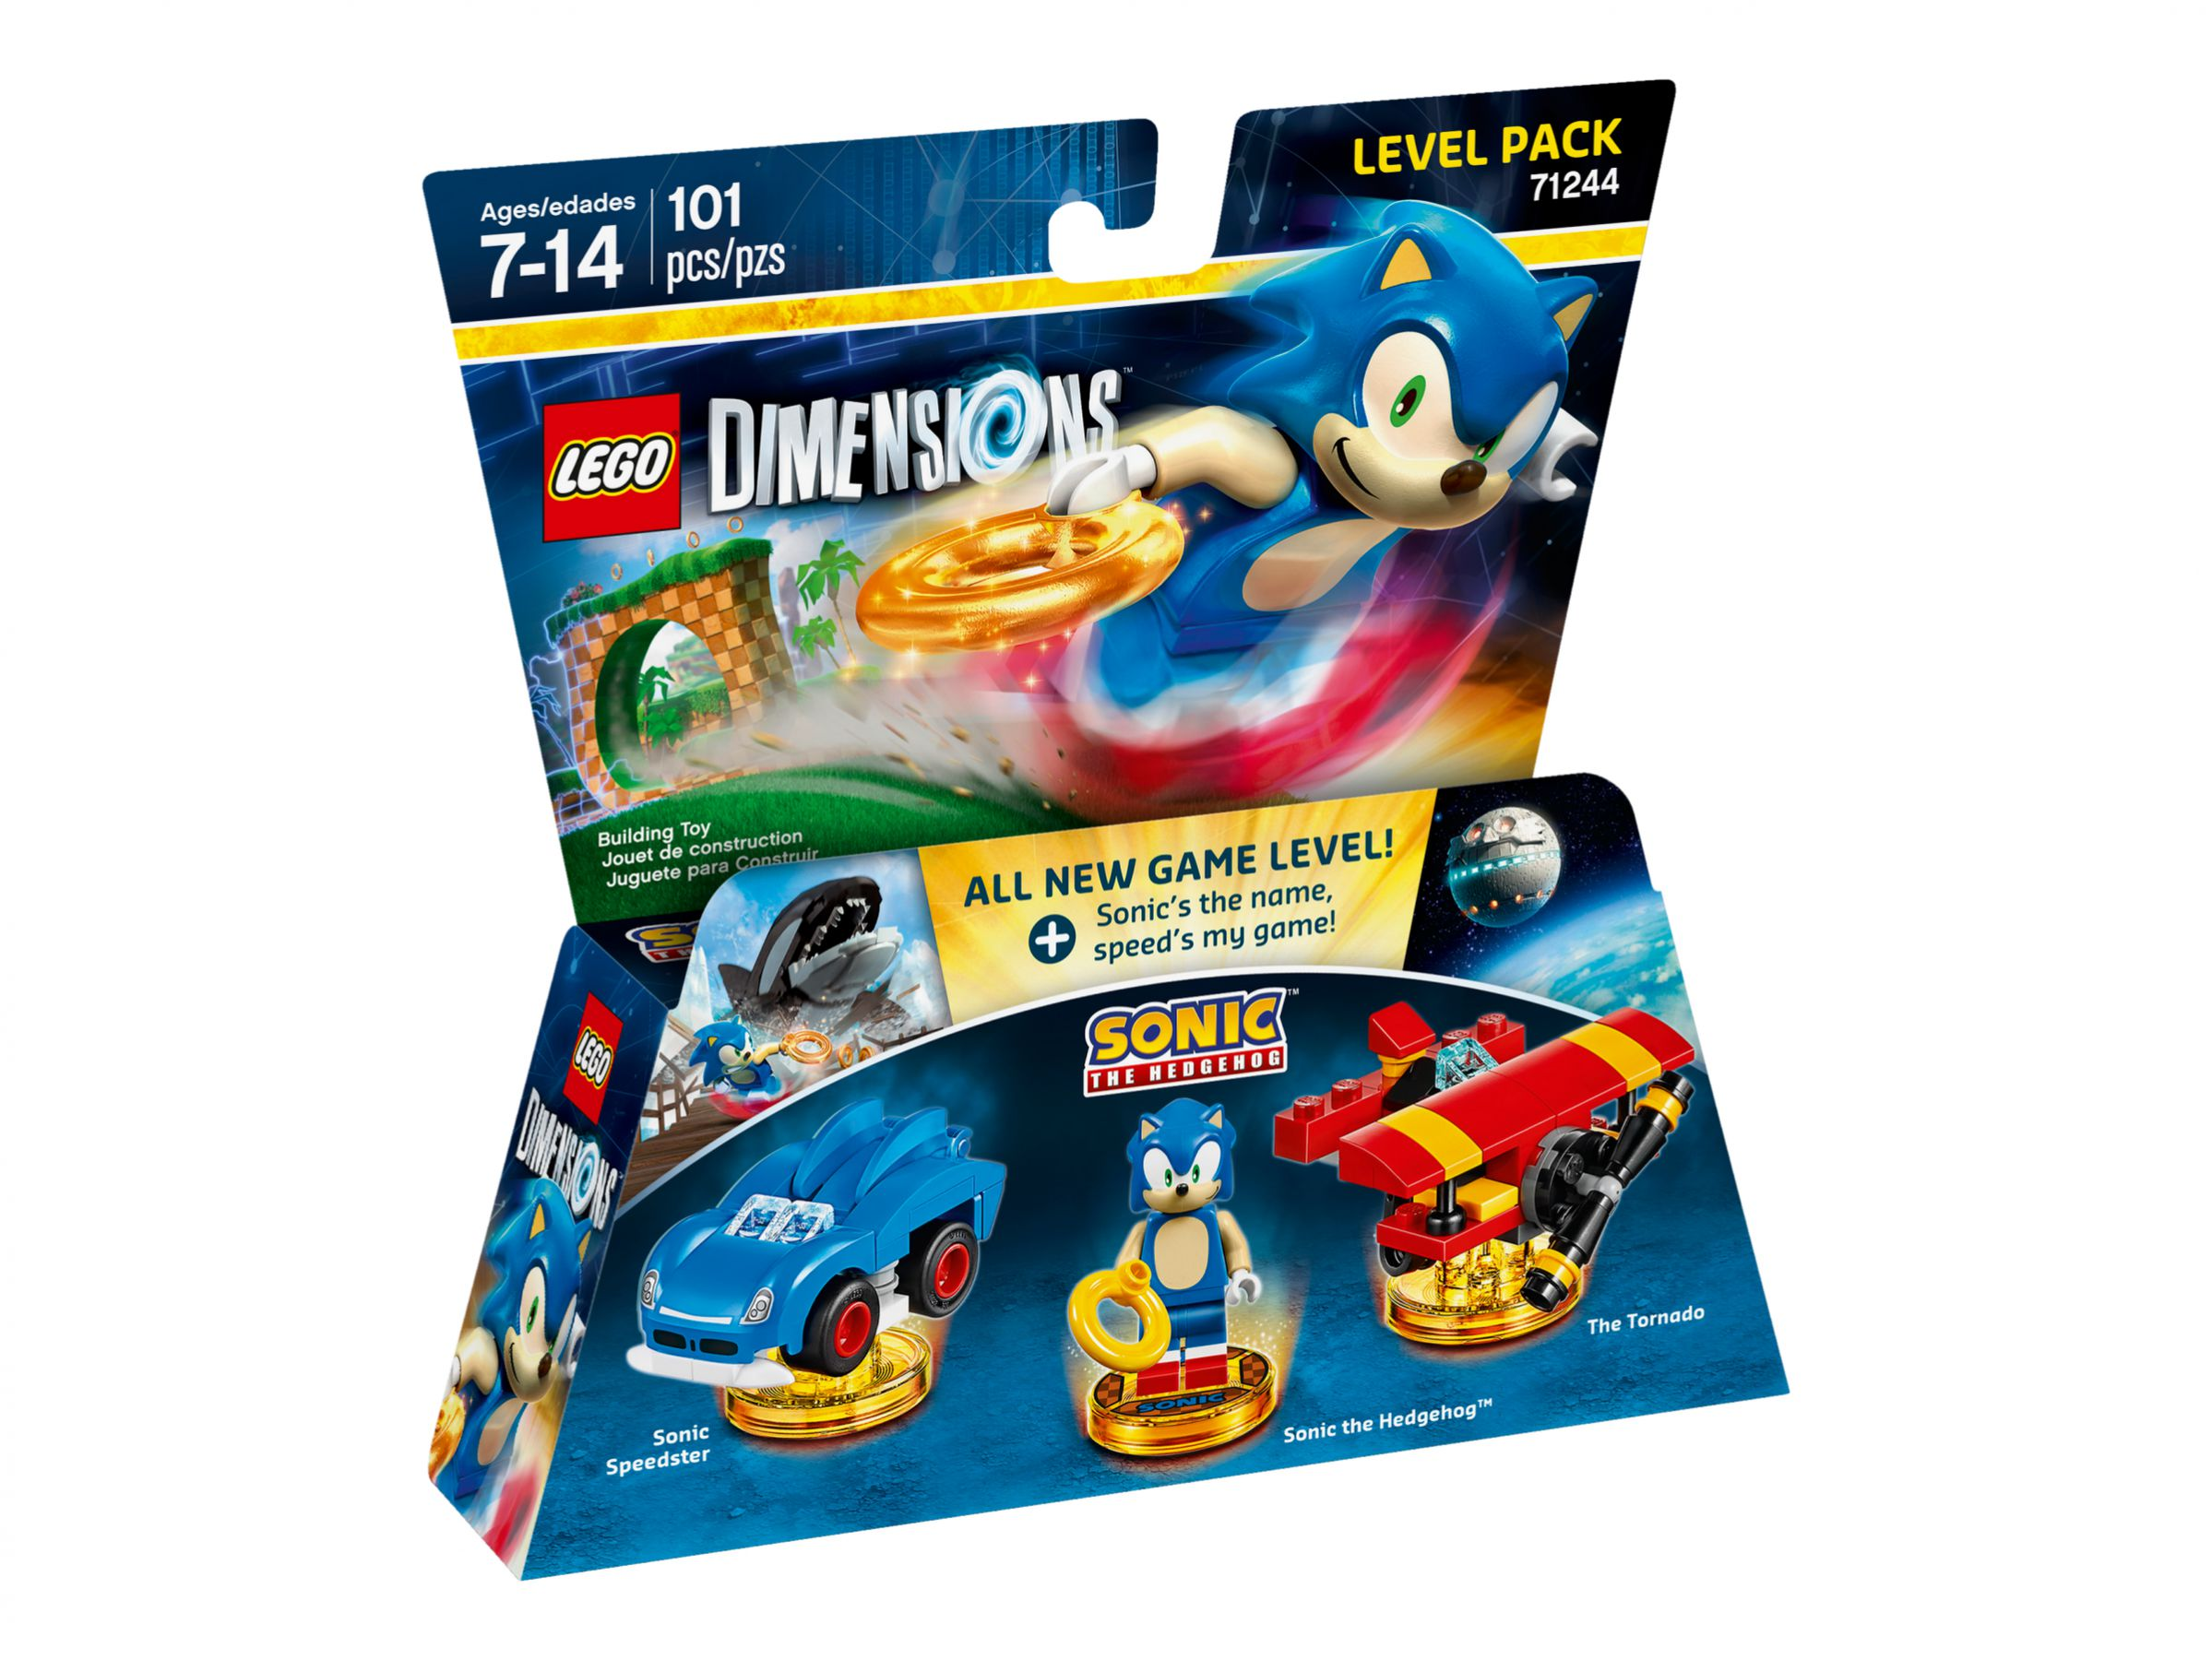 LEGO Dimensions 71244 Level Pack Sonic the Hedgehog LEGO_71244_alt1.jpg